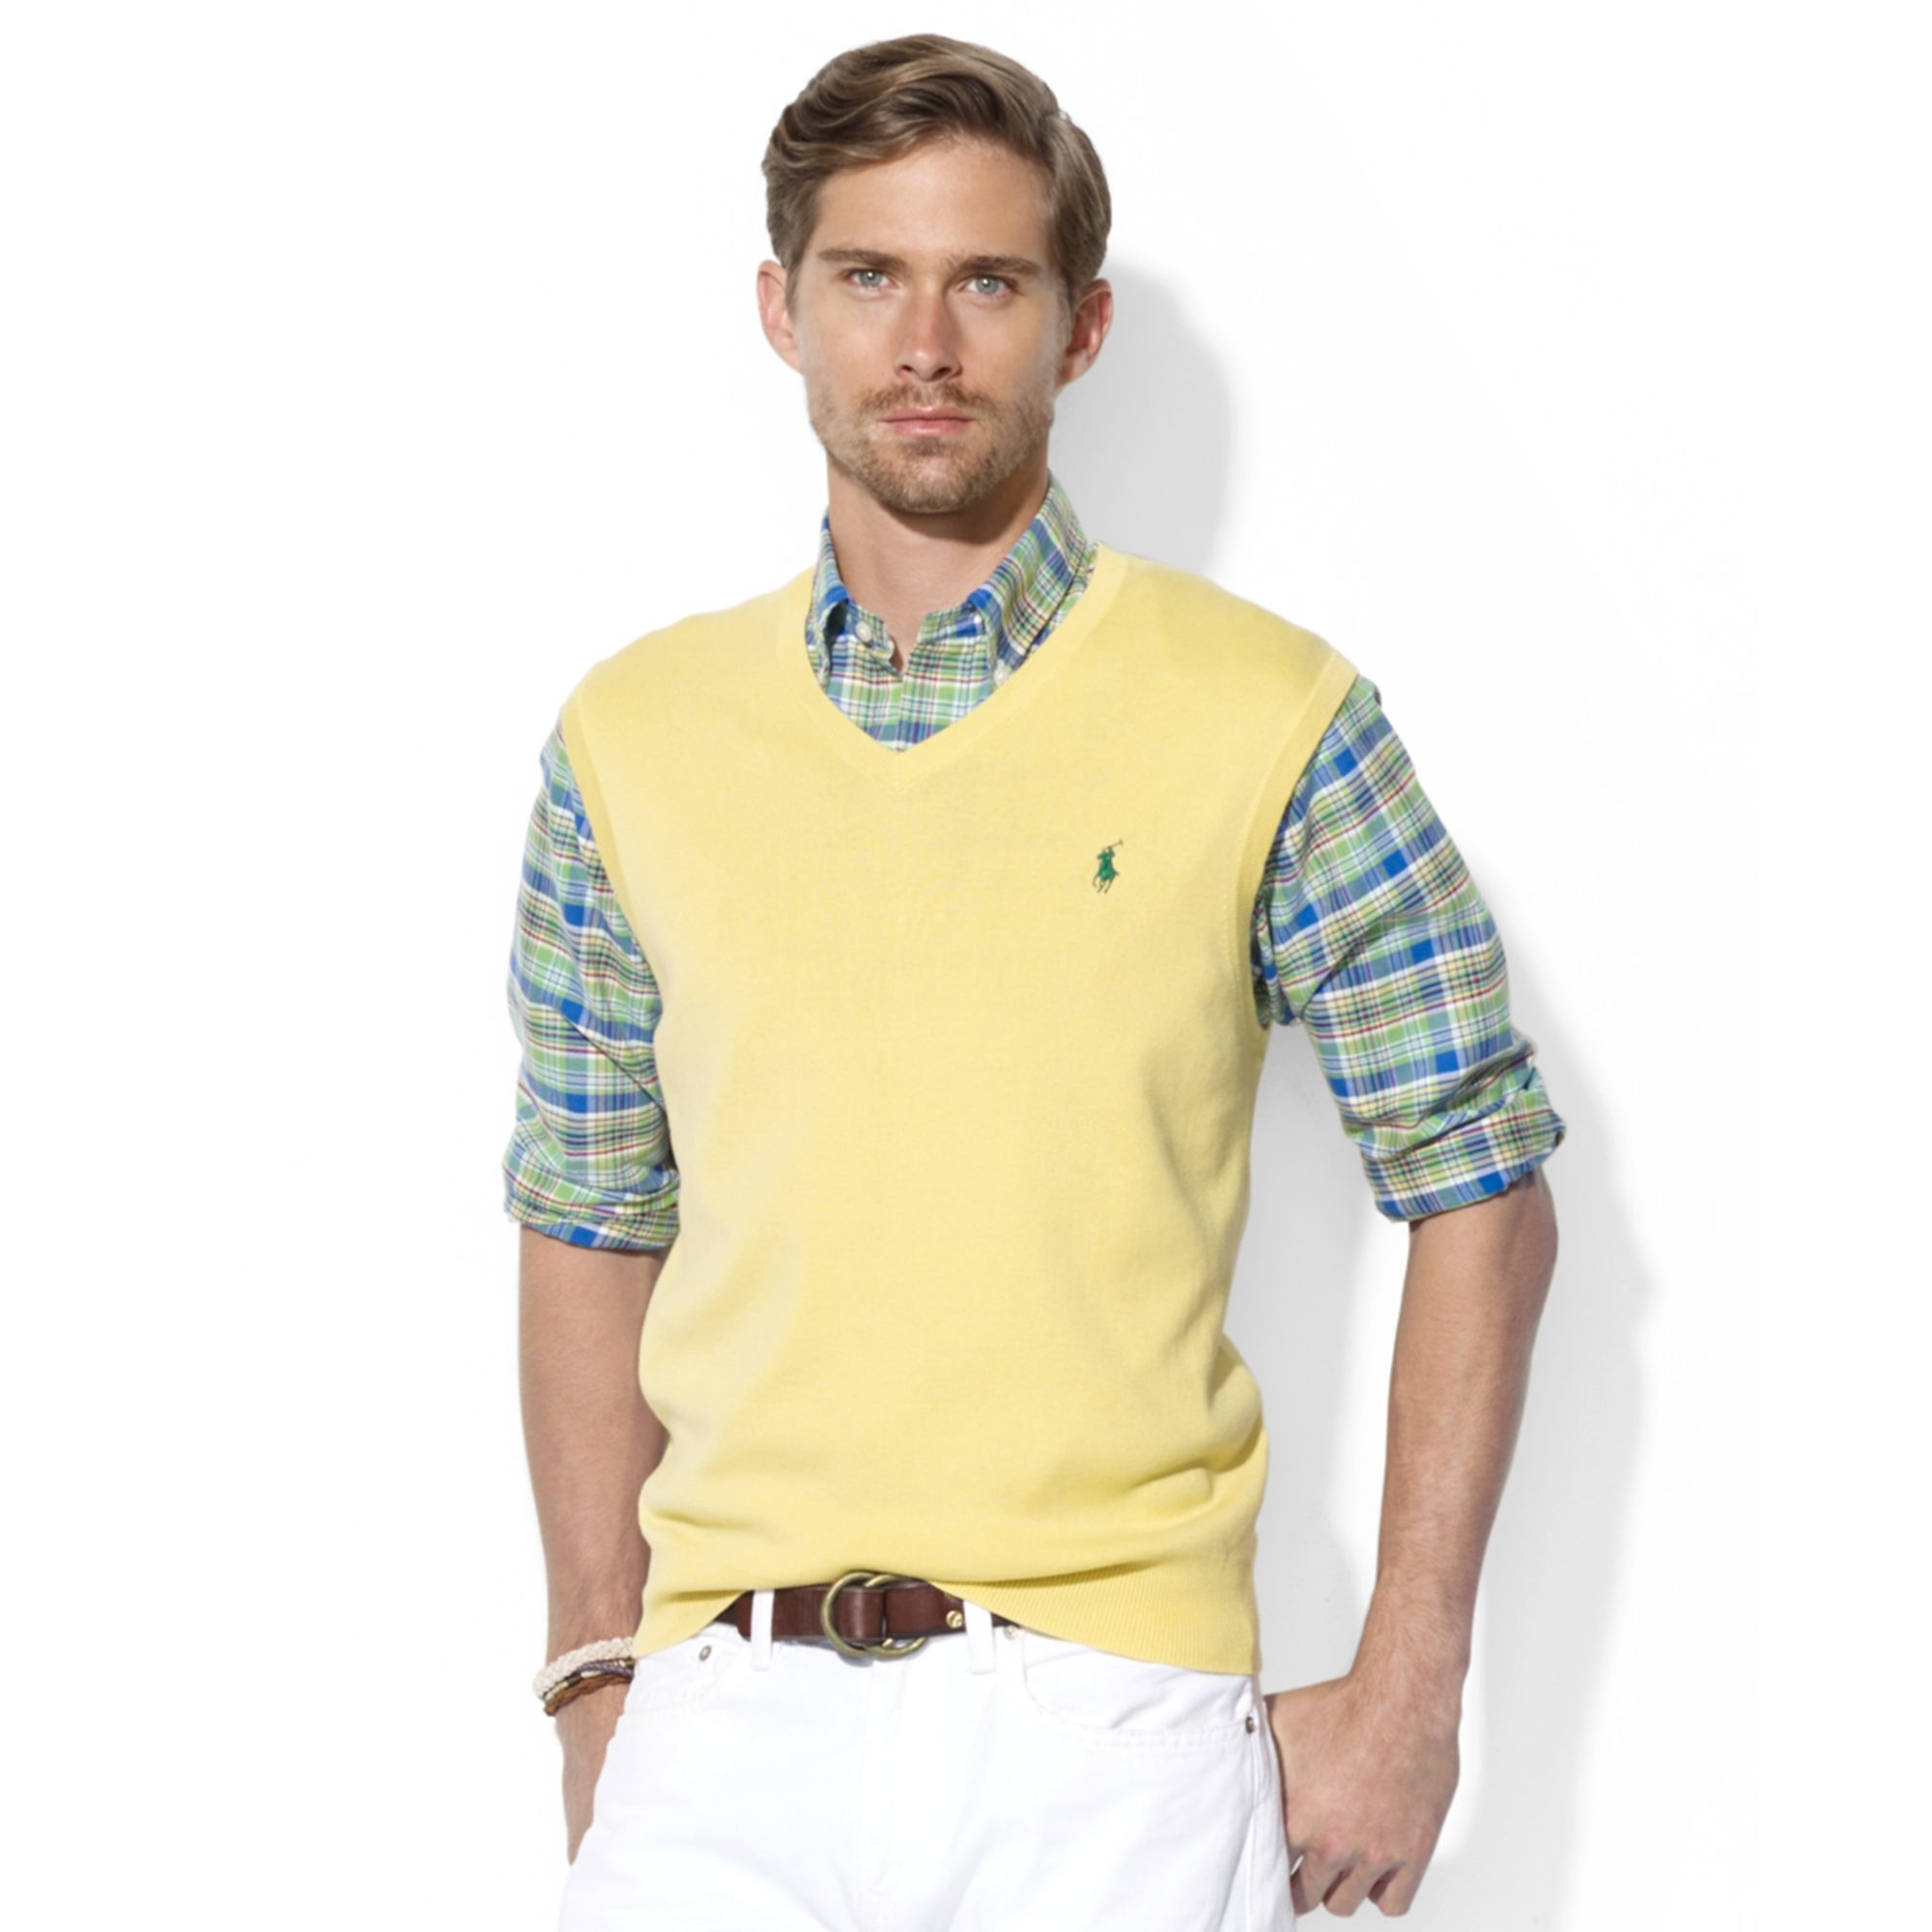 c94bbcb45b519 Ralph lauren yellow polo neck pima cotton sweater vest product normal jpg  2000x2000 Sweater over polo